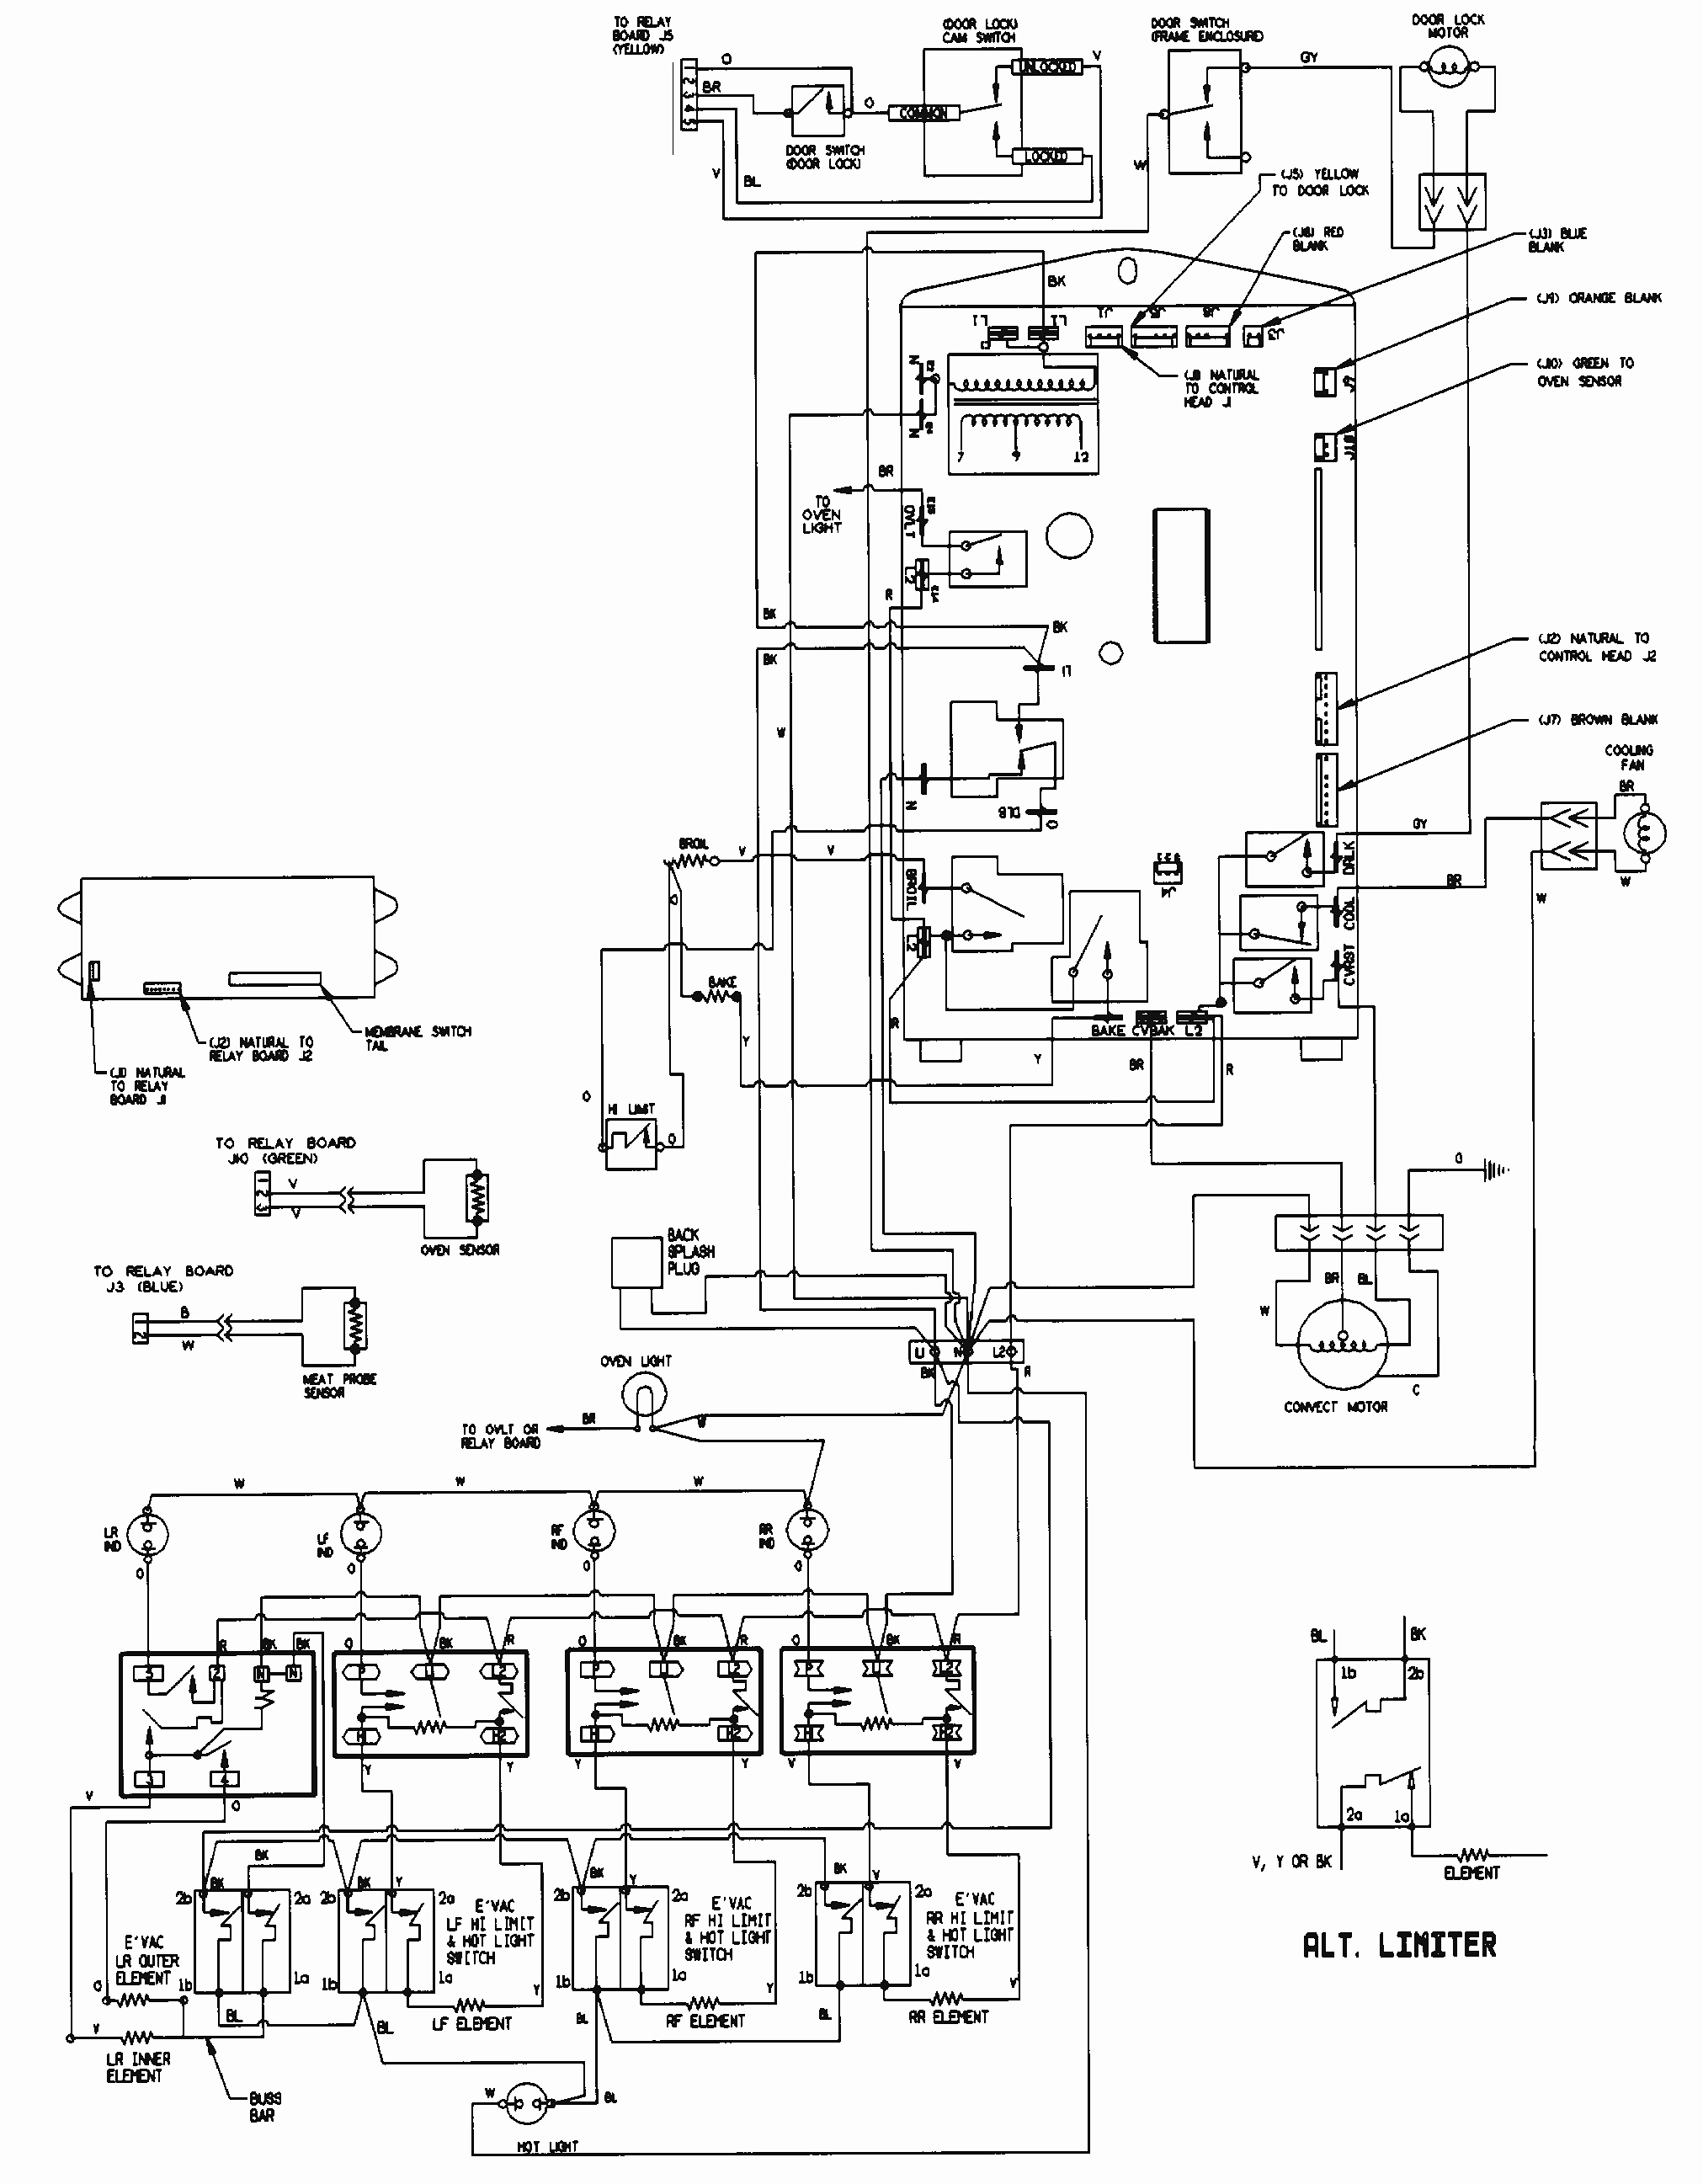 Admirable Intermatic St01 Wiring Diagram Gallery Wiring Diagram Sample Wiring 101 Eattedownsetwise Assnl